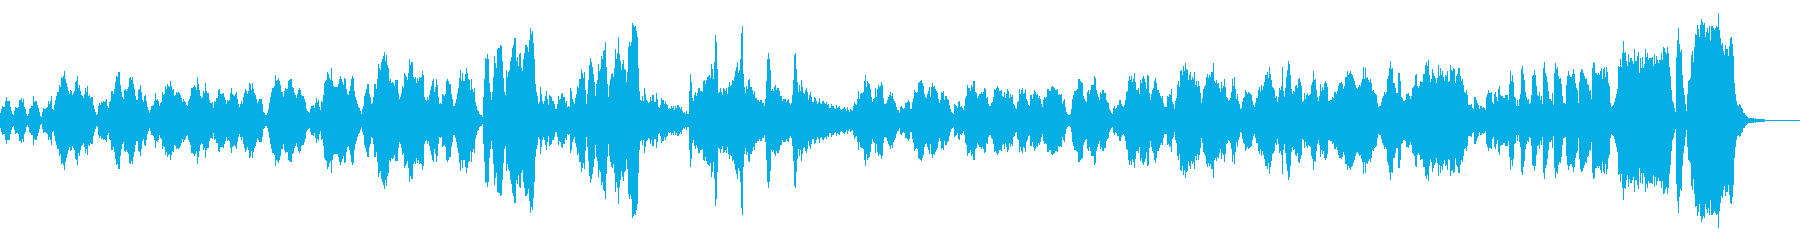 Waltz from Coppelia's reproduced waveform